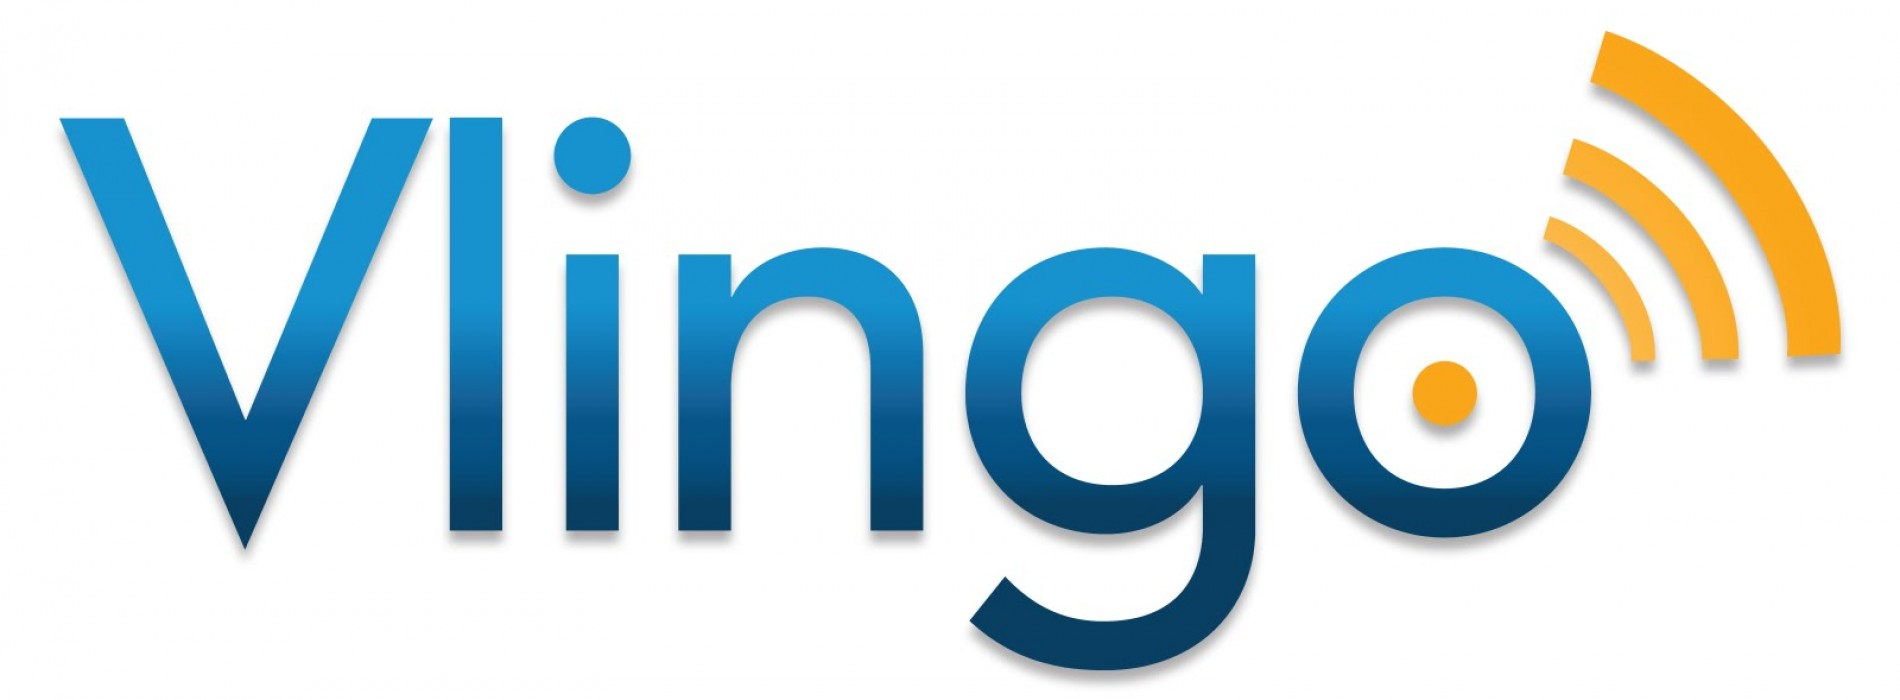 Vlingo to bring Virtual Assistant to TV